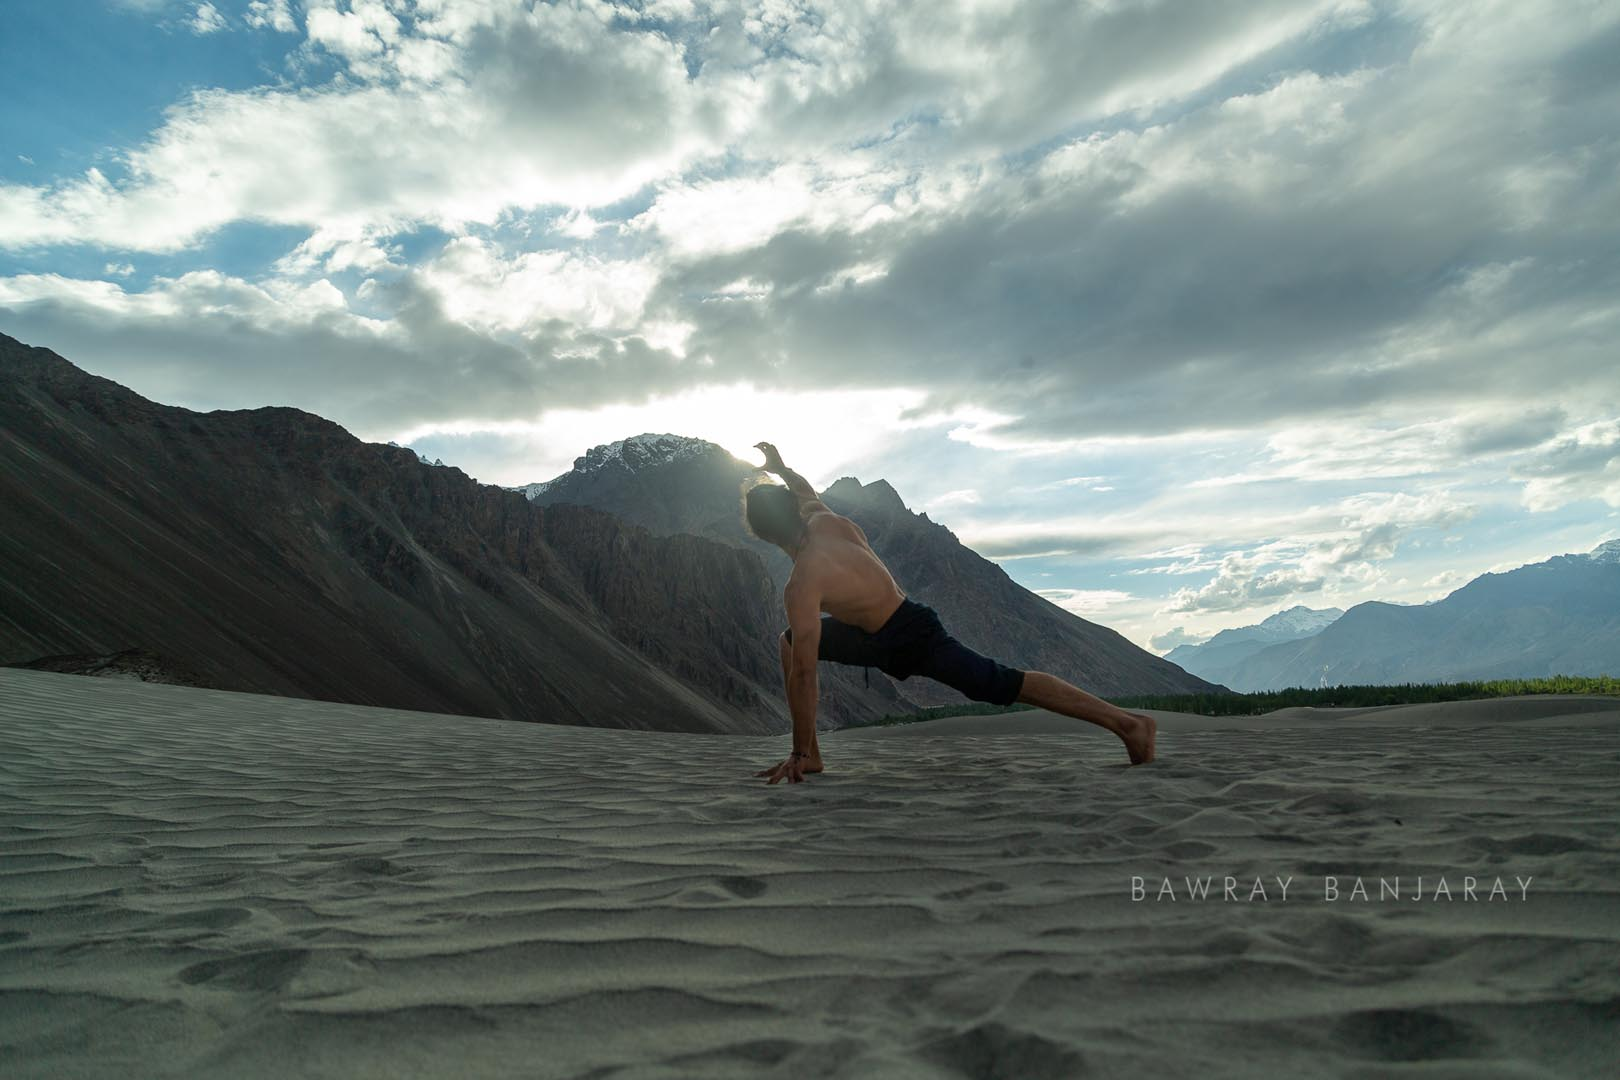 Jose on Le Ladakh Expedition in MOre Plains with Bawray Banjaray